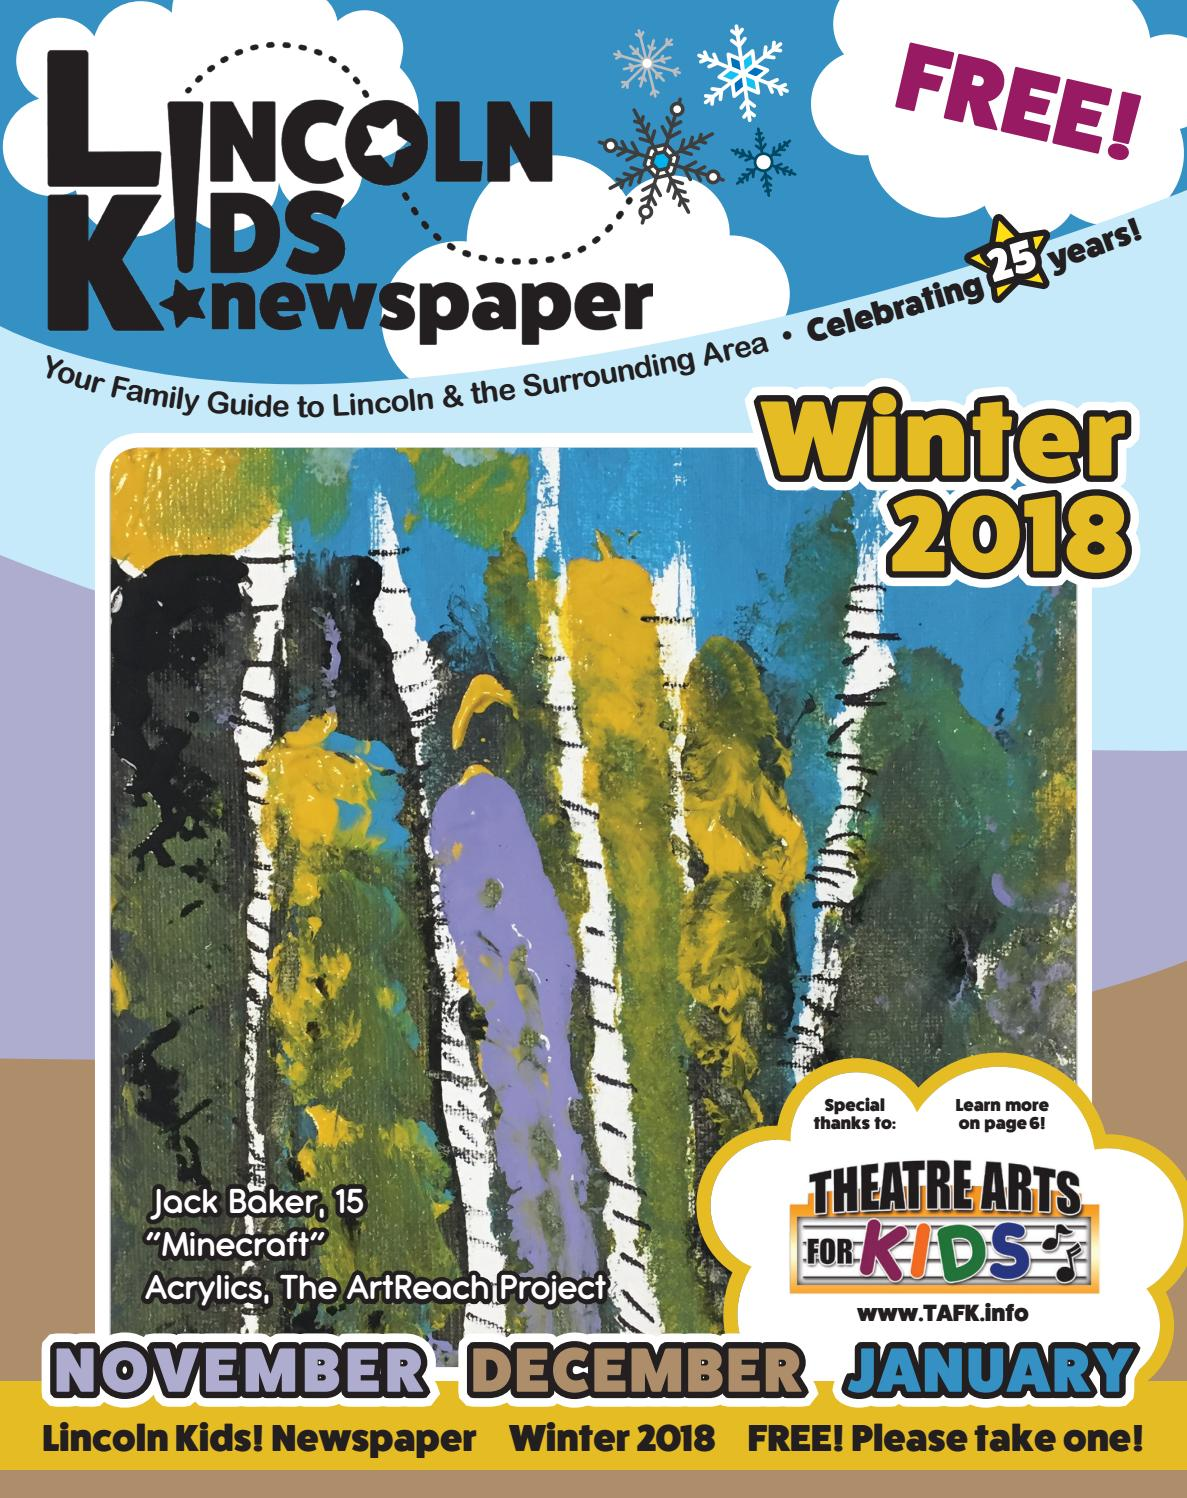 envelope pillow tutorial diy inspired.htm lincoln kids  newspaper winter 2018 edition by lincoln kids  issuu  lincoln kids  newspaper winter 2018